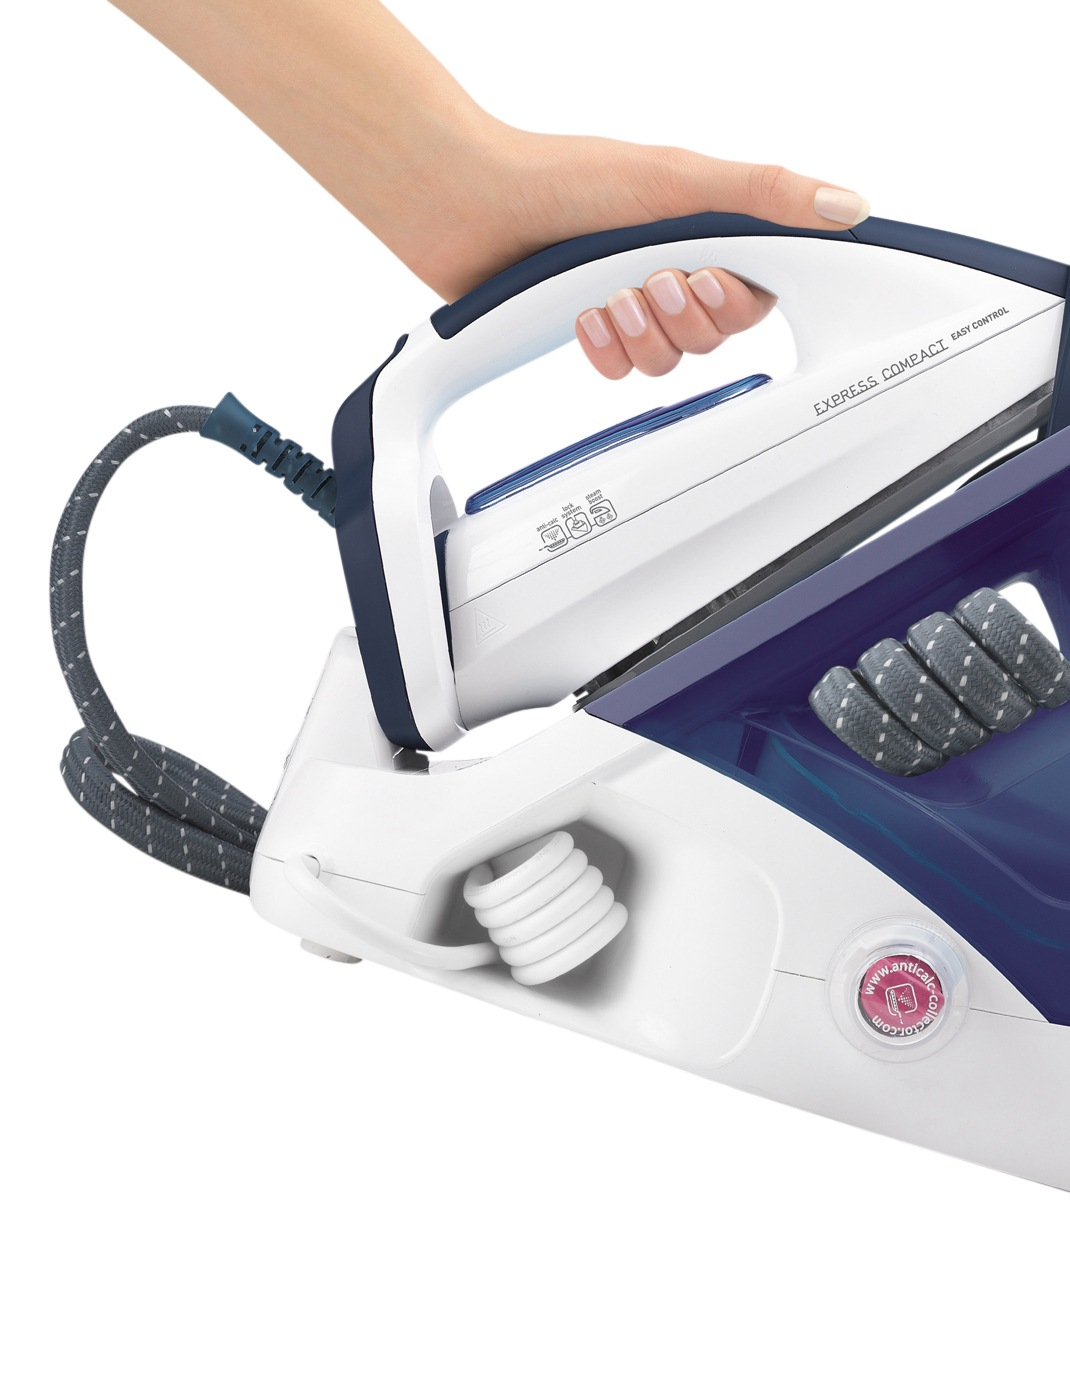 tefal express compact iron manual